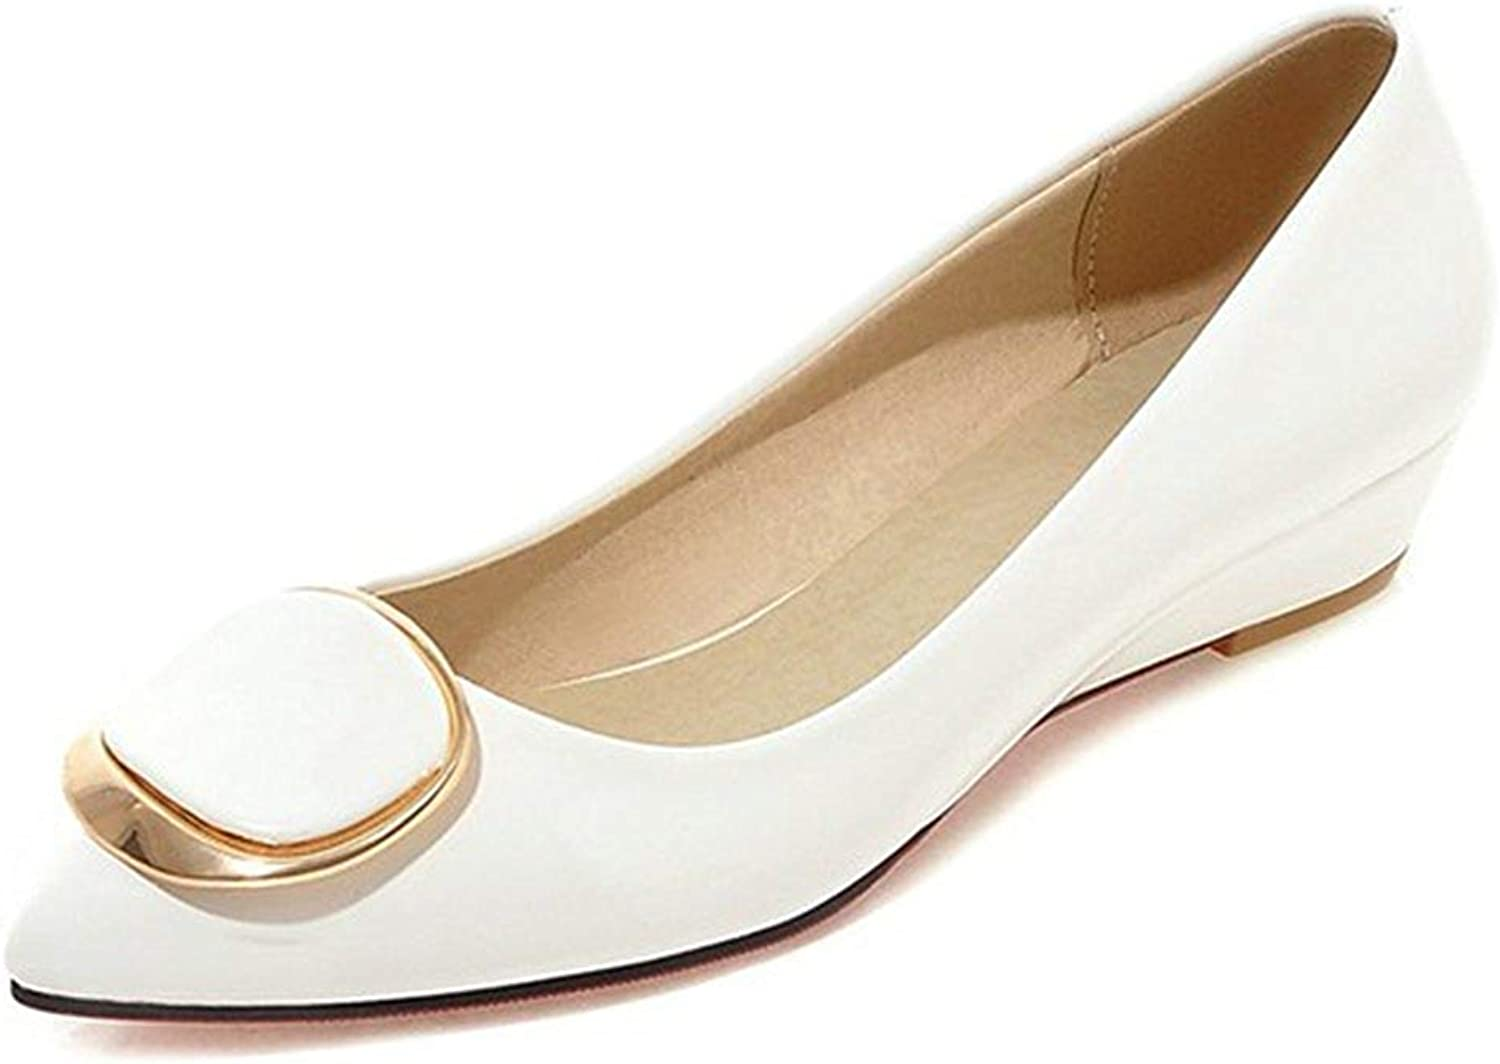 Unm Women's Casual Comfort Buckle Low Cut Burnished Dressy Pointed Toe Low Heel Wedge Pumps shoes